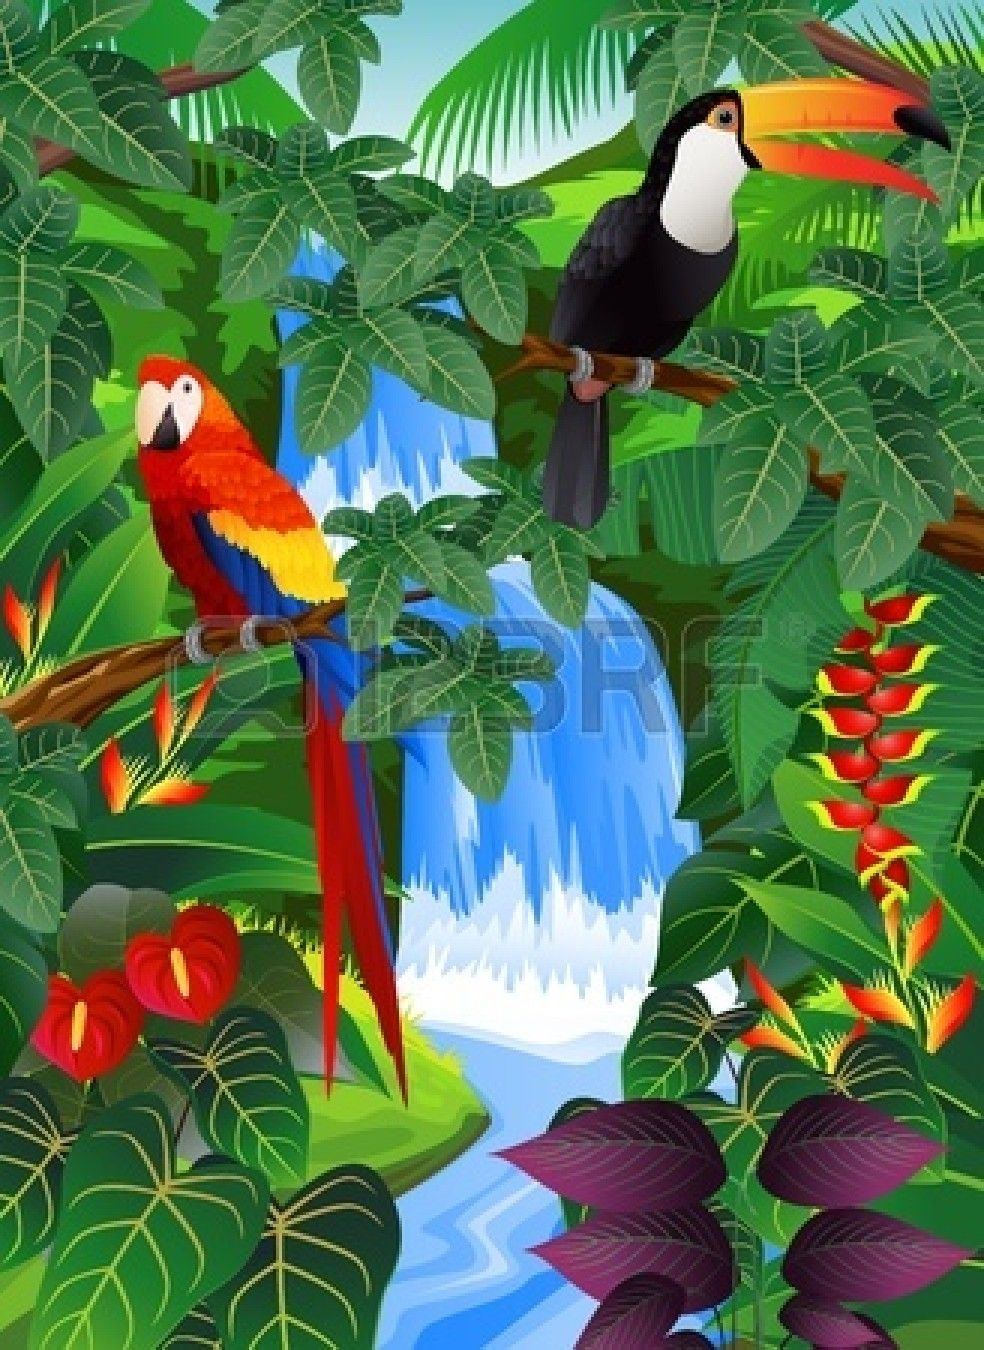 Forest clipart parrot. Rainforest toucan and macaw